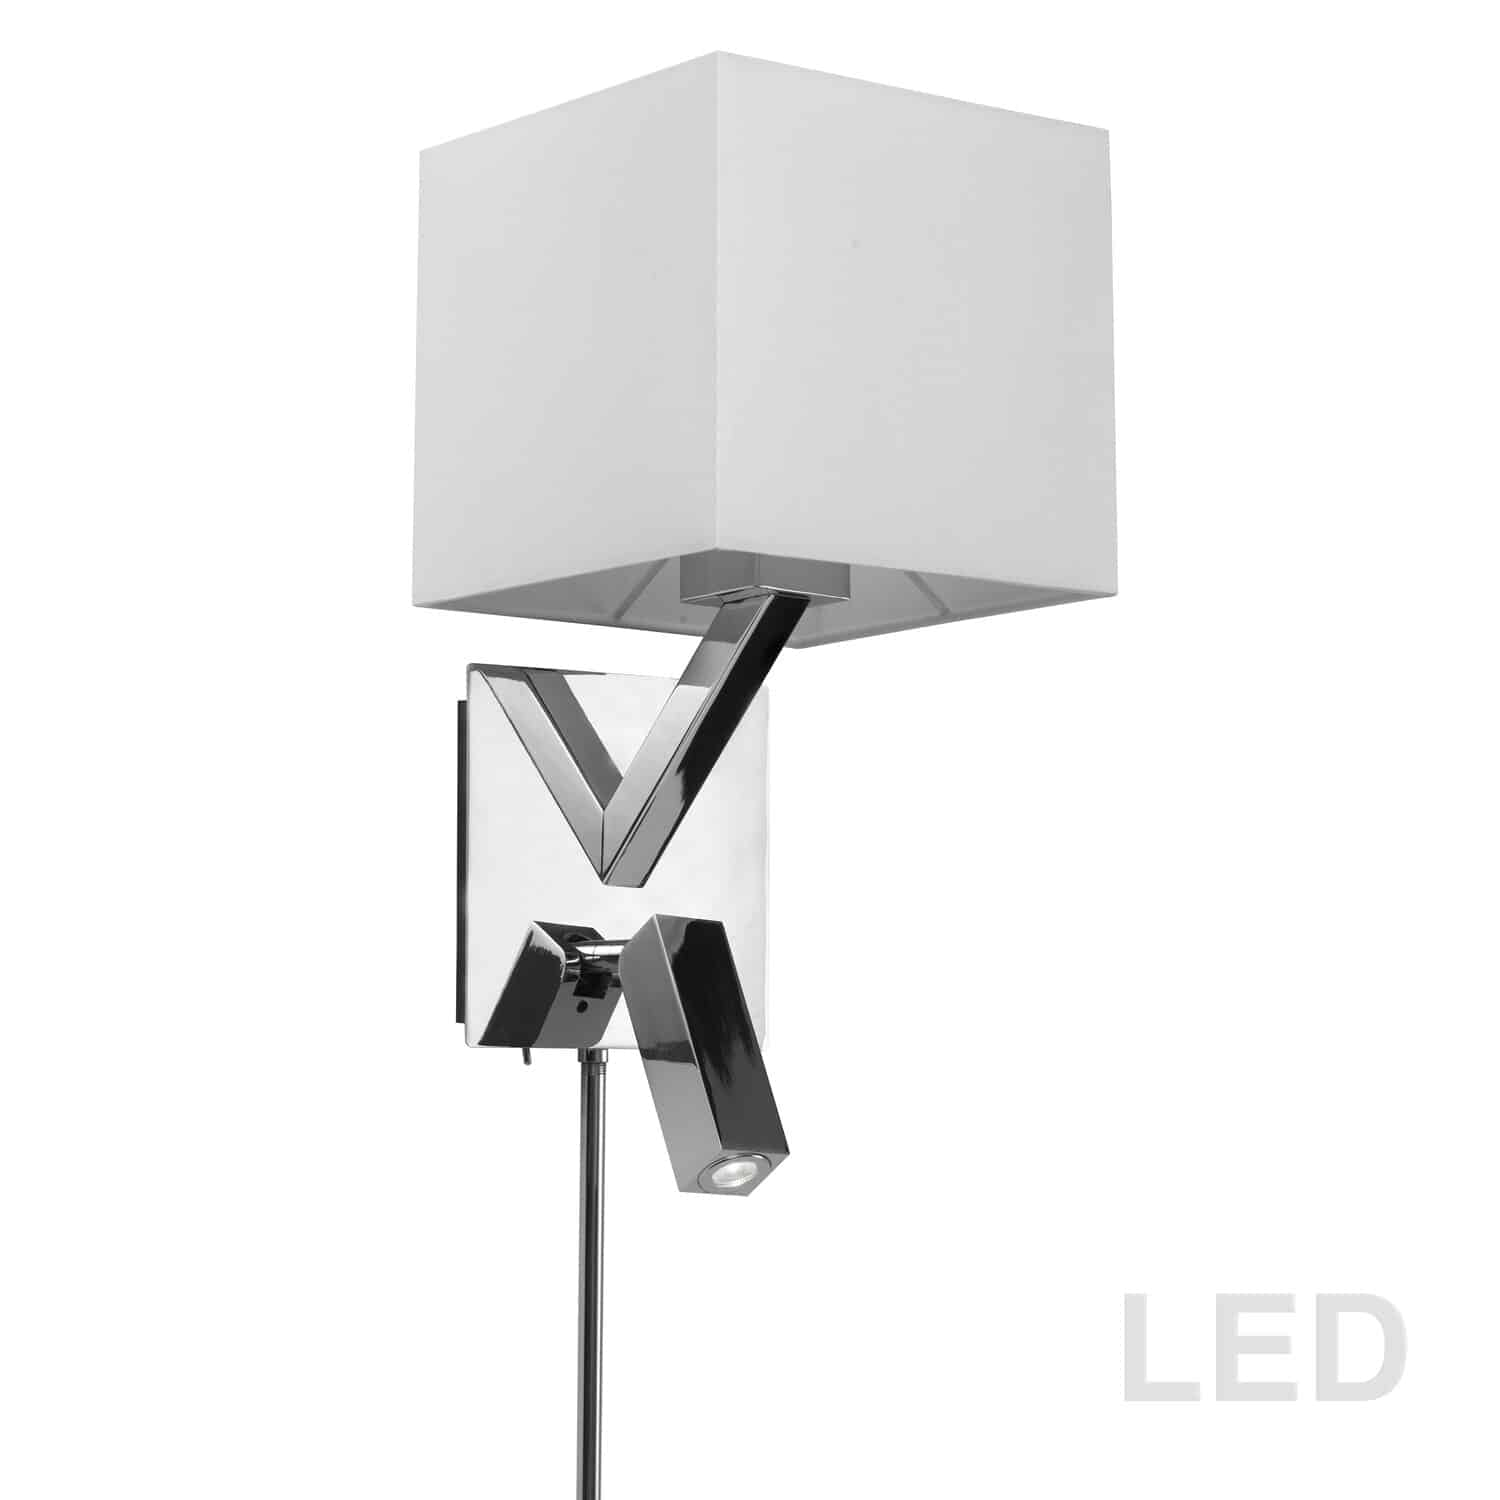 1 Light, 1 Downlight  LED Wall Sconce, Polished Chrome Finish with White Shade